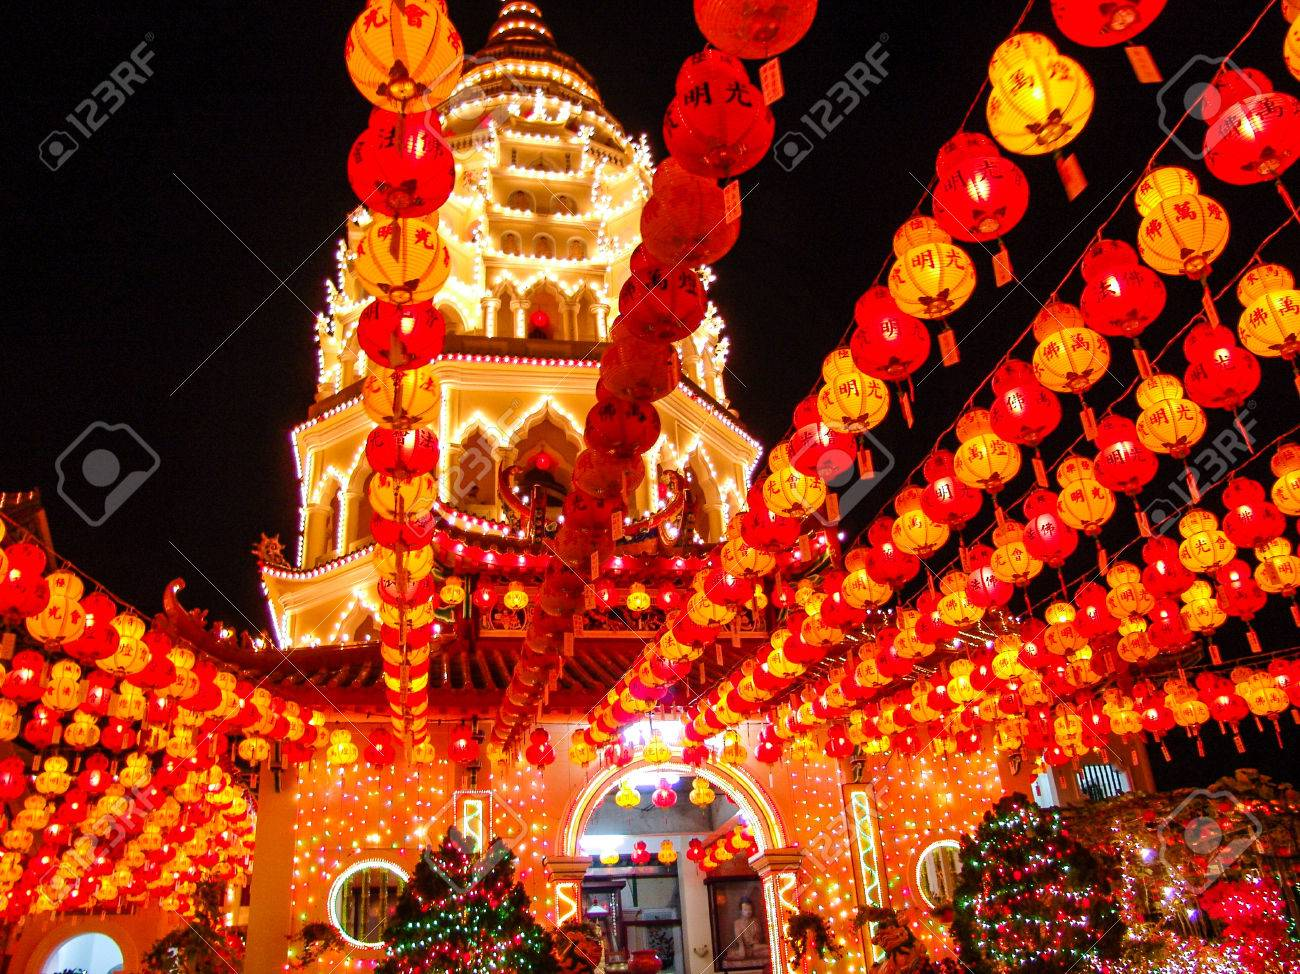 Paper Lantern In A Chinese Buddhist Temple Taken On Chinese ...